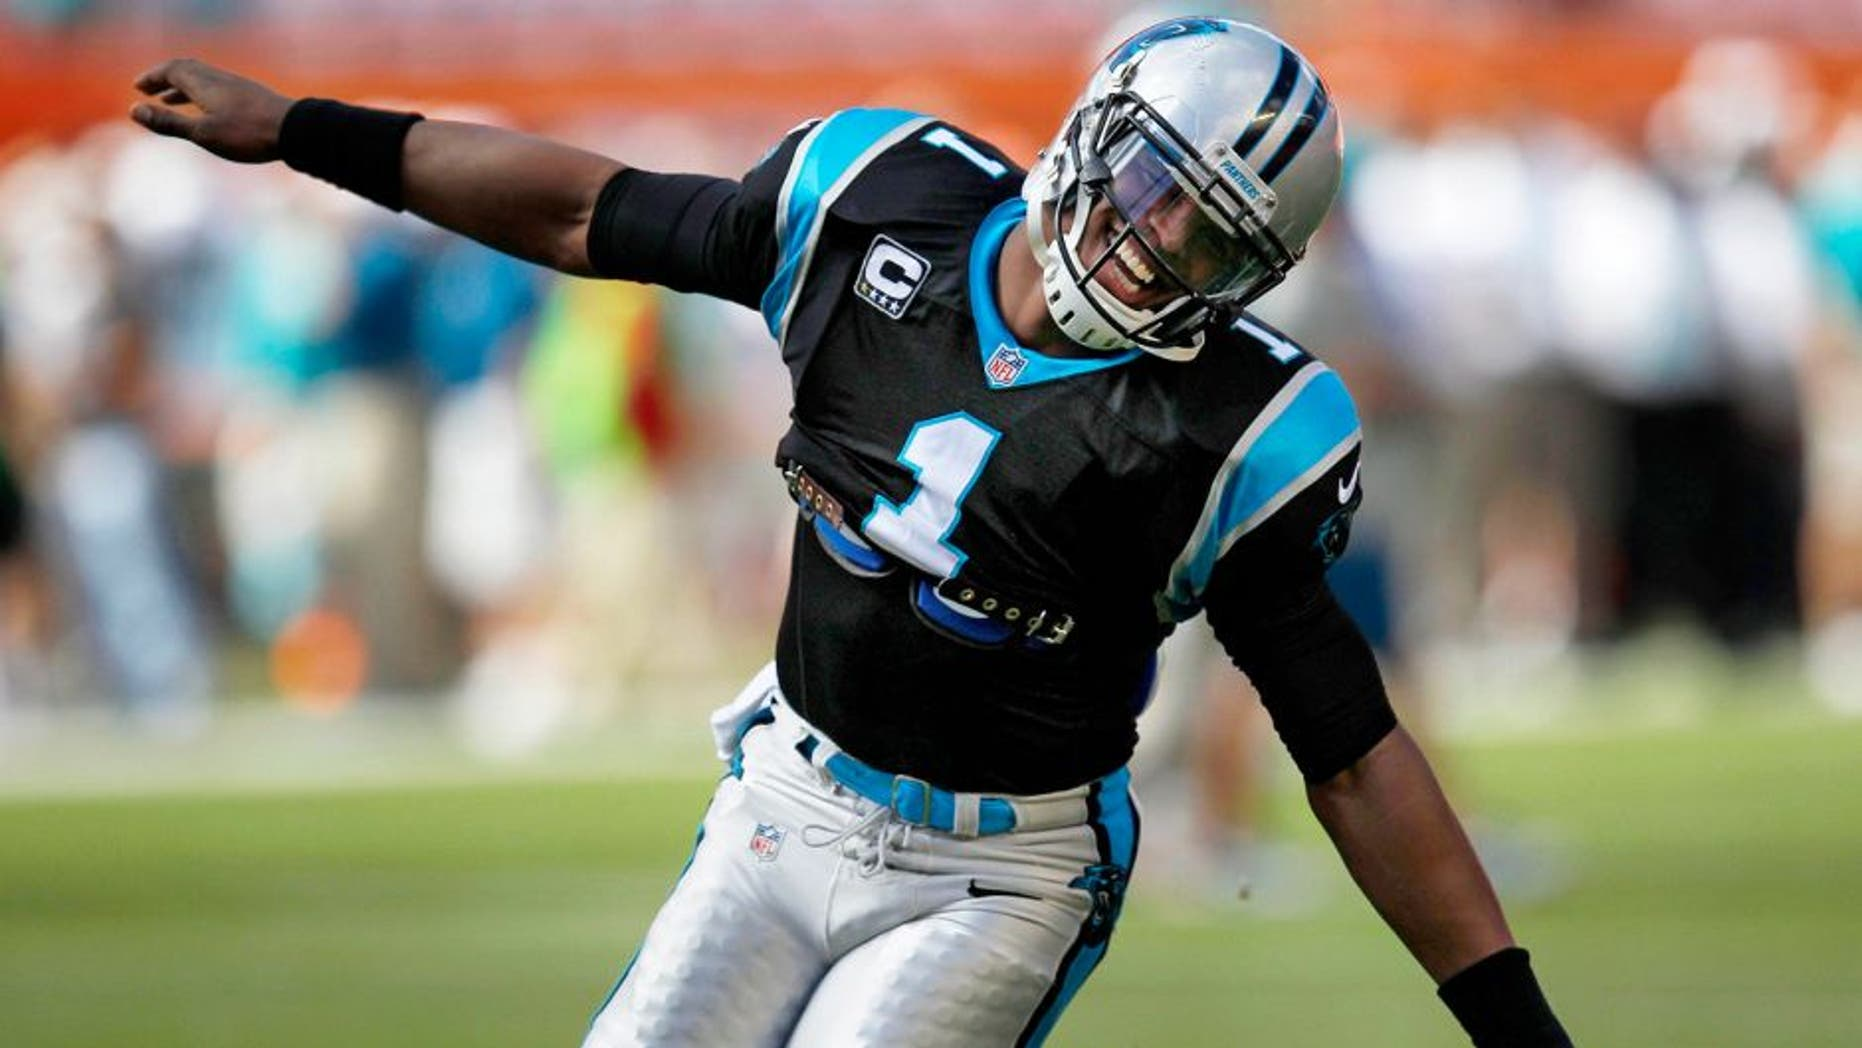 Nov 24, 2013; Miami Gardens, FL, USA; Carolina Panthers quarterback Cam Newton (1) before playing against the Miami Dolphins at Sun Life Stadium. Mandatory Credit: Robert Mayer-USA TODAY Sports